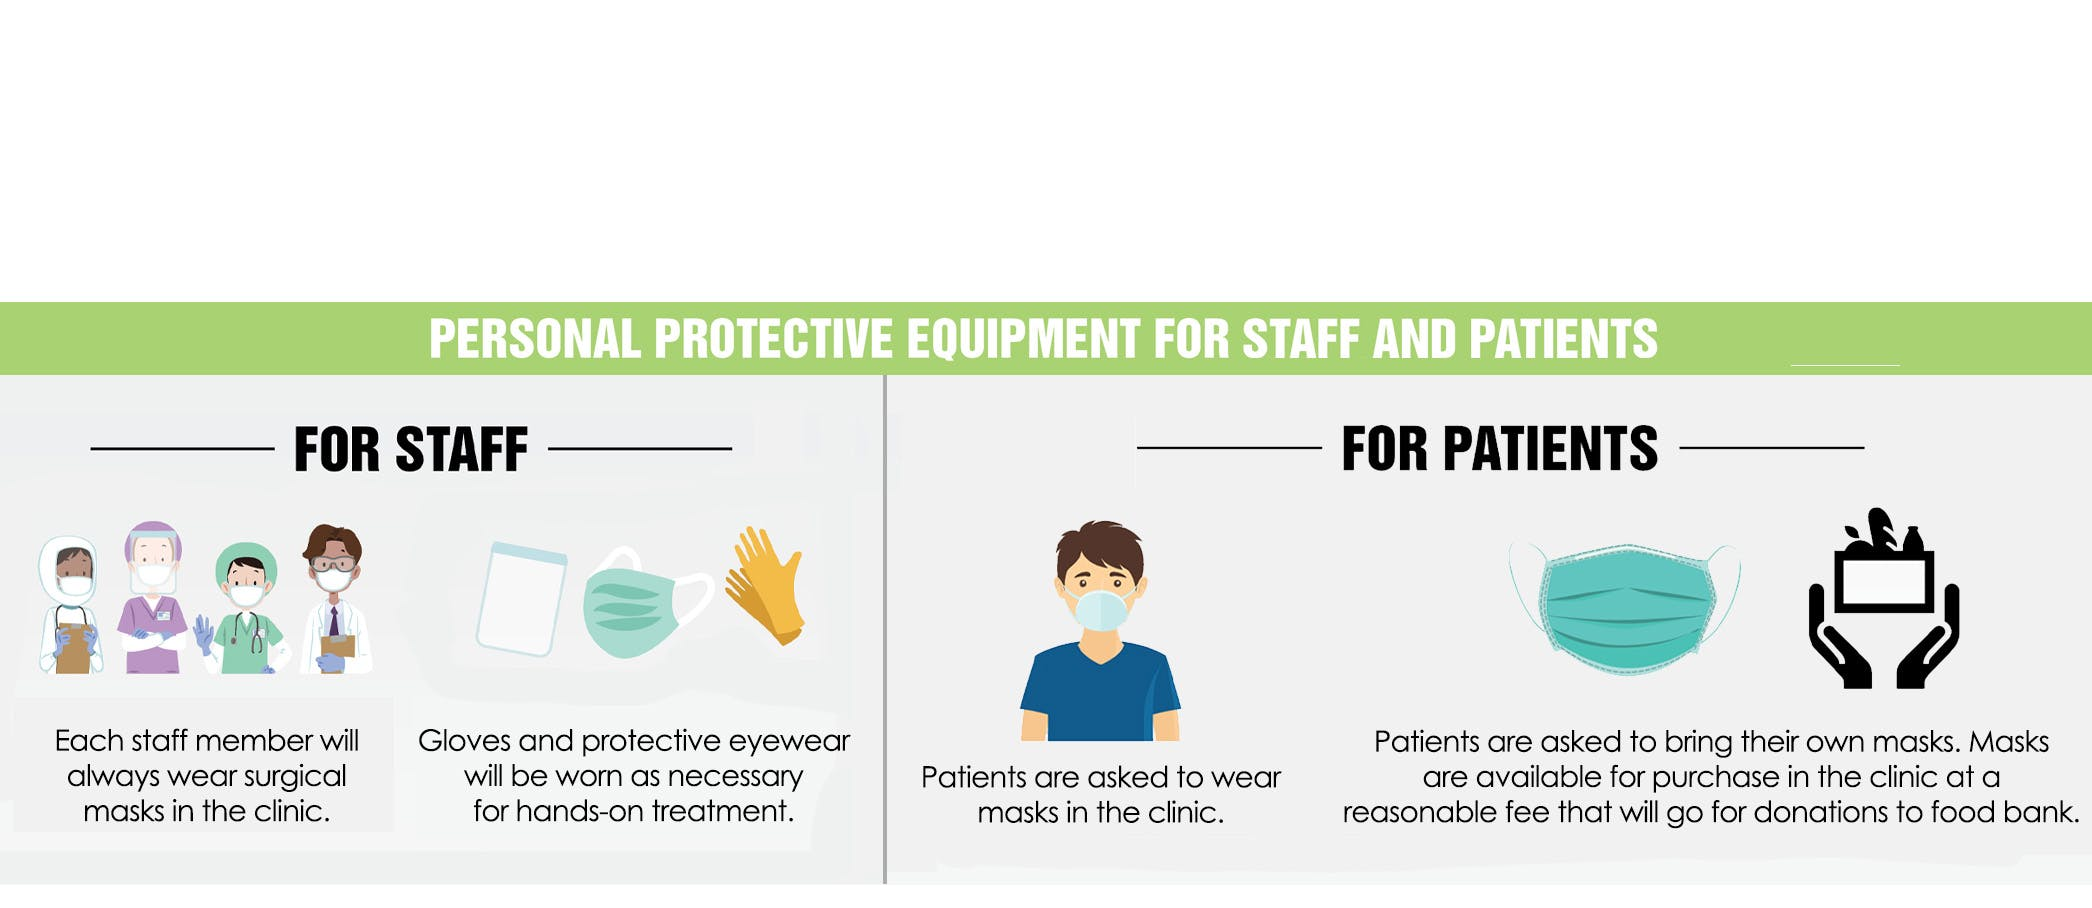 Personal Protective Equipment (PPE) for Staff and Patients